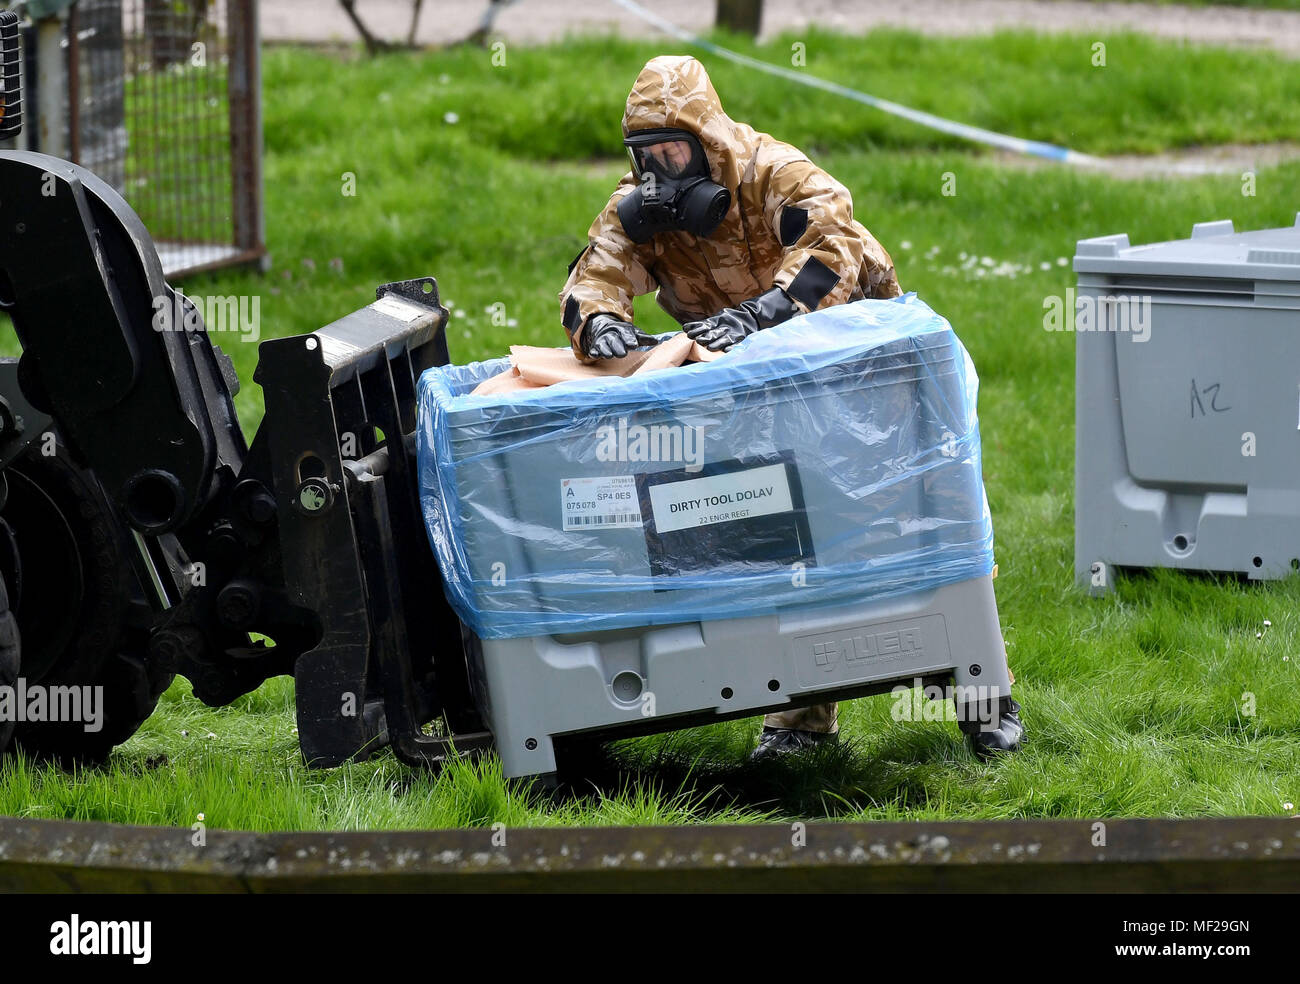 Salisbury, Wiltshire, UK. 24th Apr, 2018. Soldiers in breathing apparatus replacing the paving where Russian spy Sergei Skripal and his daughter collapsed after their nerve agent attack. Credit: Finnbarr Webster/Alamy Live News - Stock Image